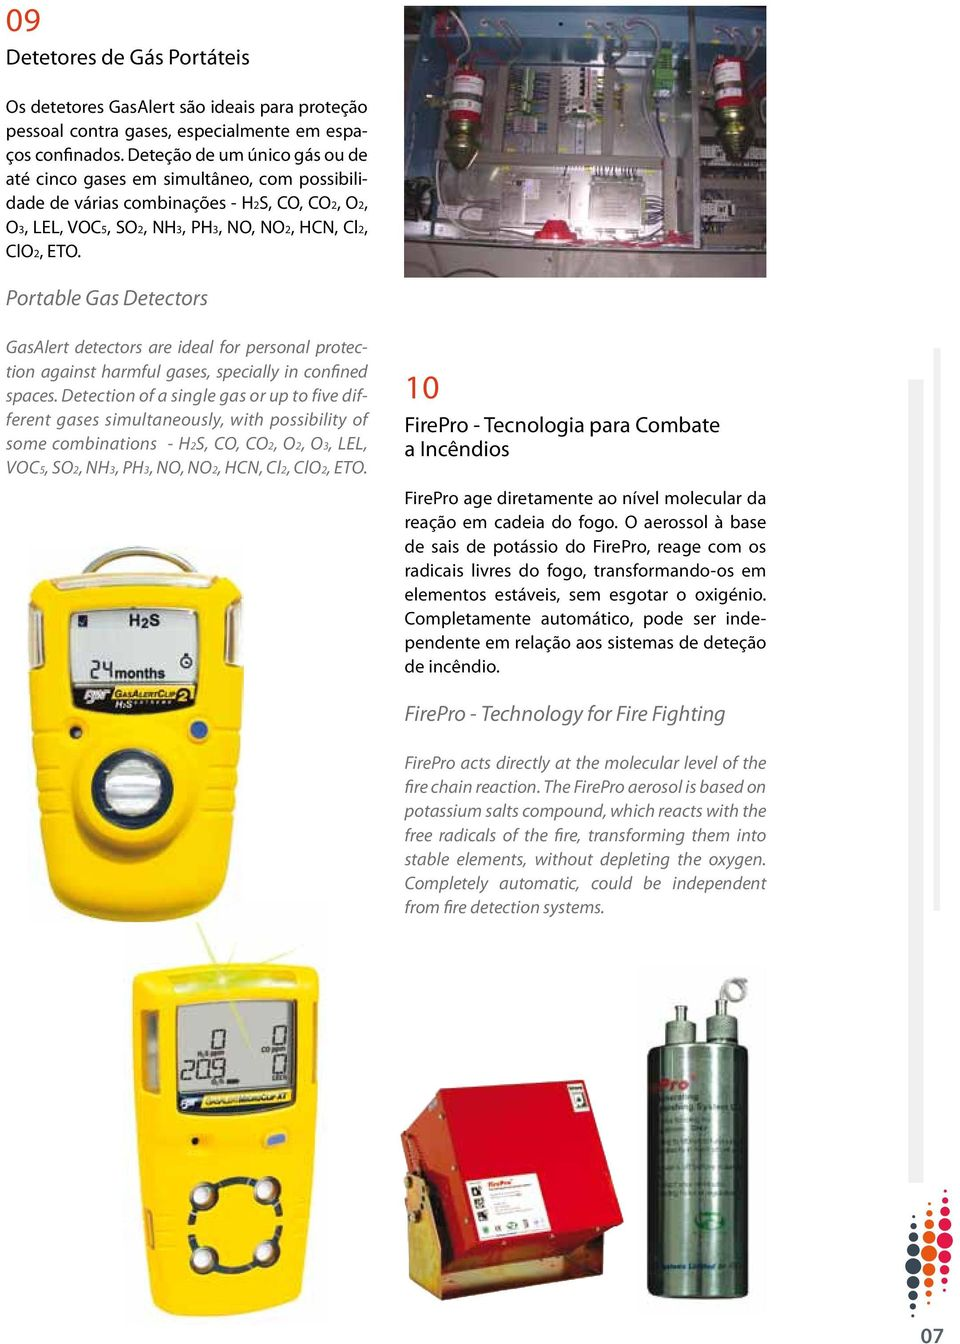 Portable Gas Detectors GasAlert detectors are ideal for personal protection against harmful gases, specially in confined spaces.